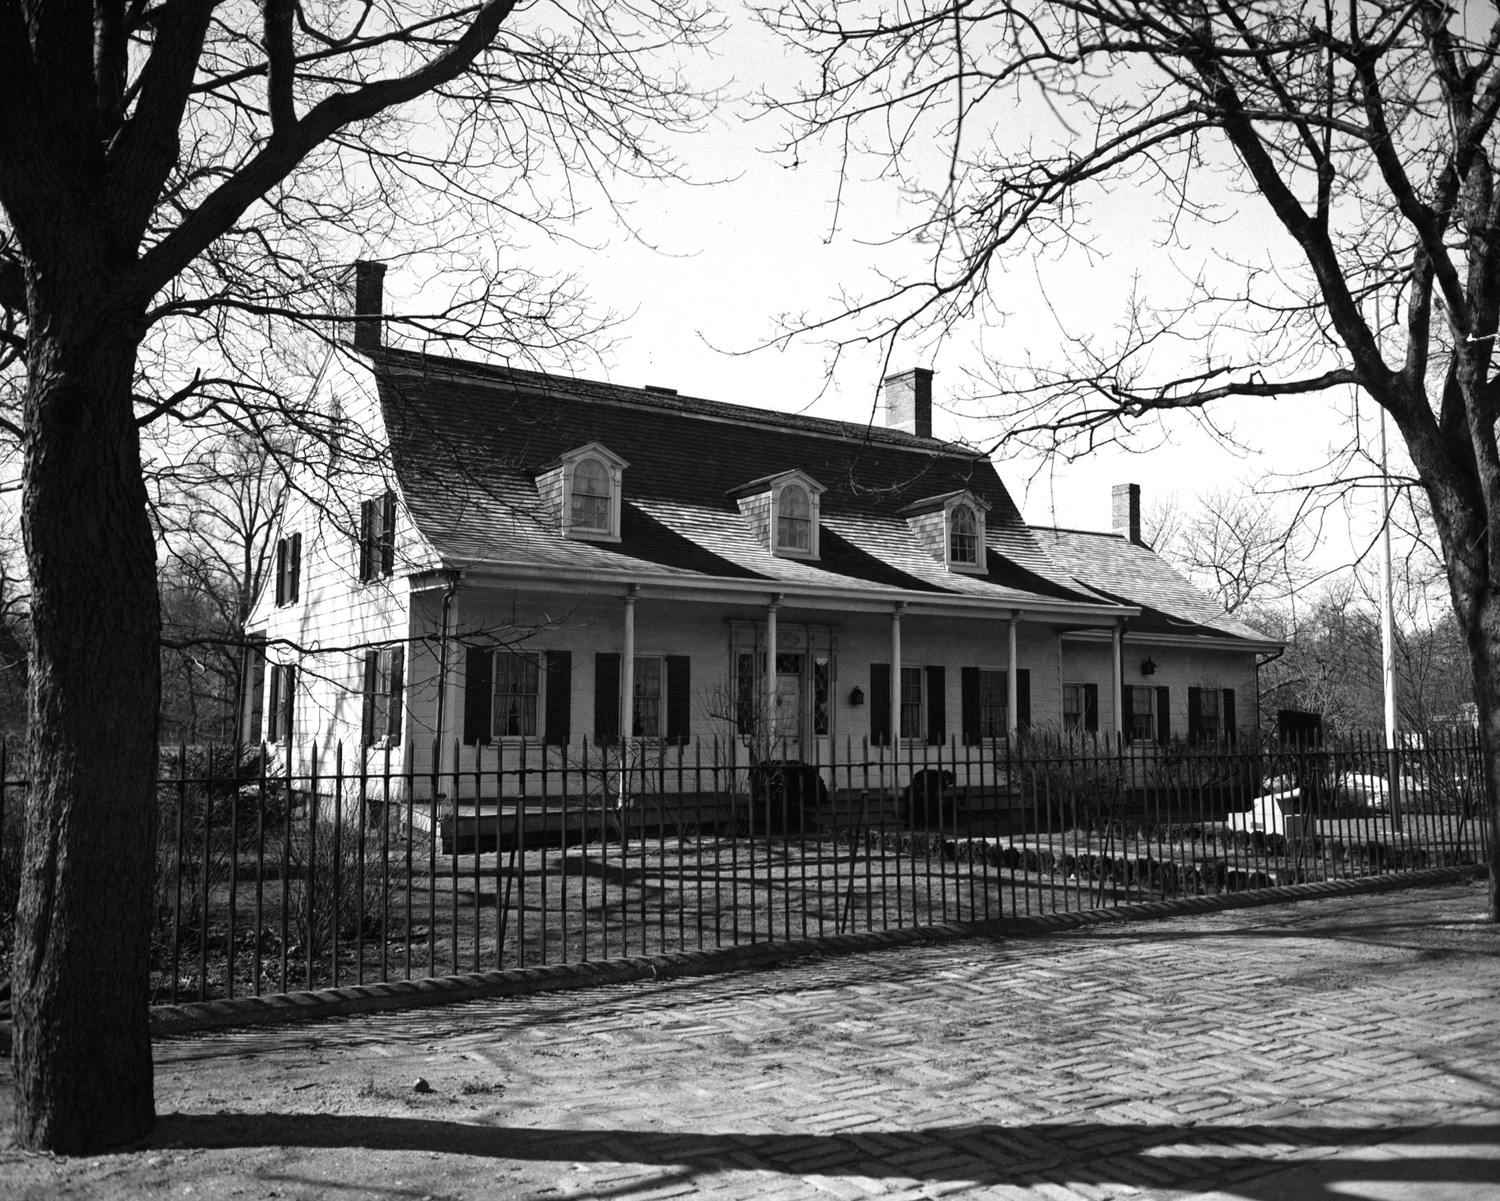 The Lefferts Homestead in Prospect Park, Brooklyn, 1955.